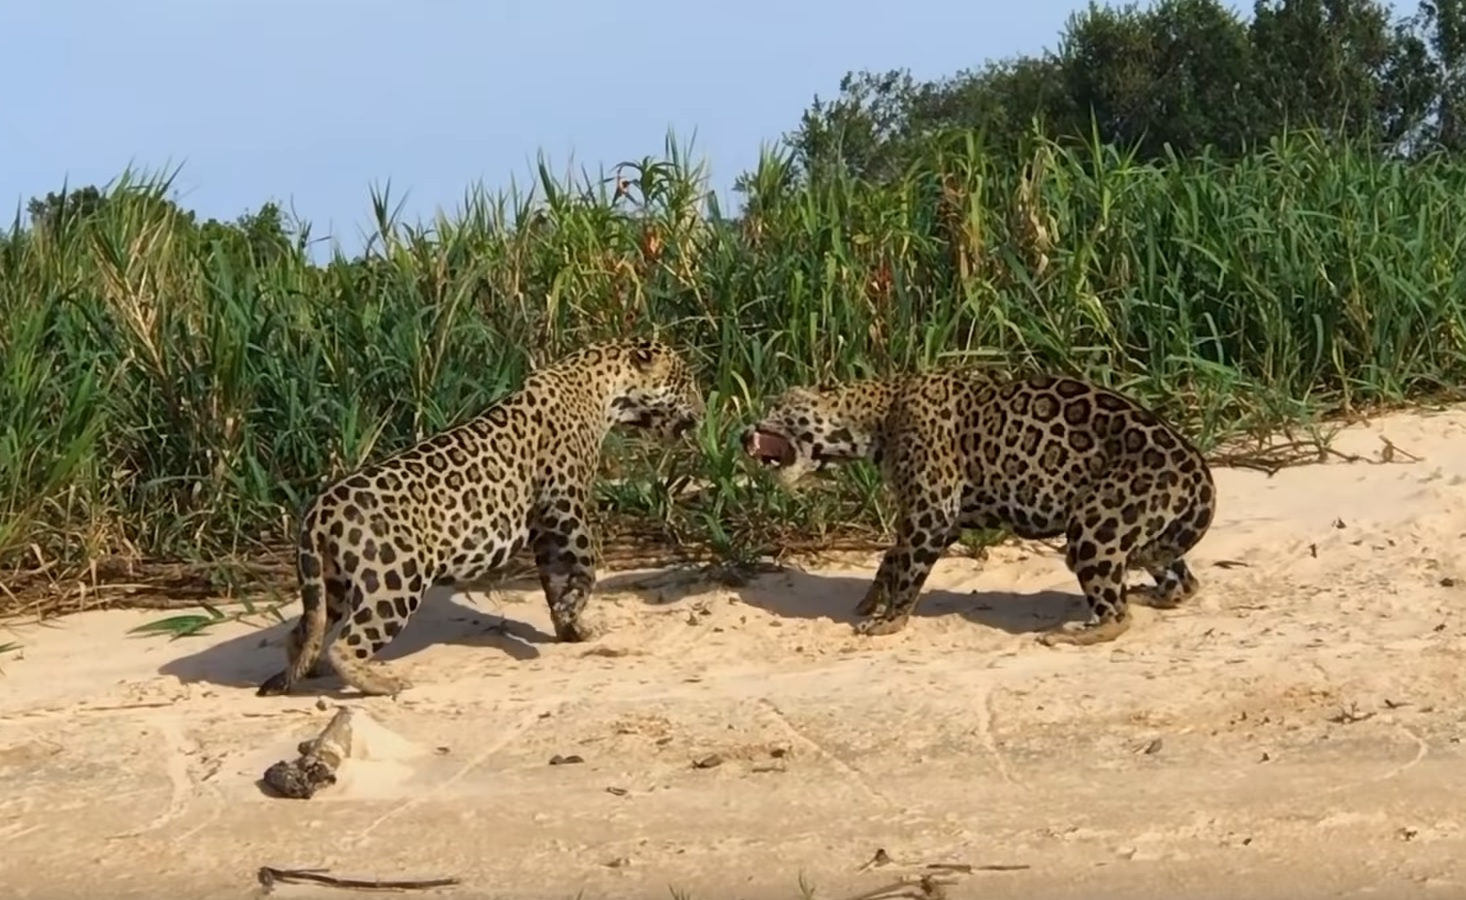 Male Jaguars Fight For Territory